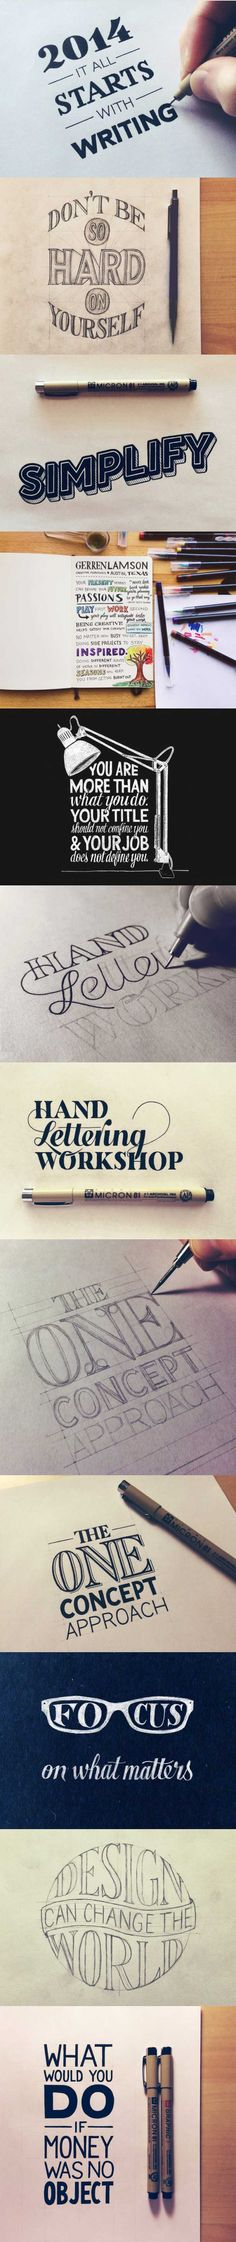 joindarkside » Awesome collection of hand lettering ( 13 Pics)!